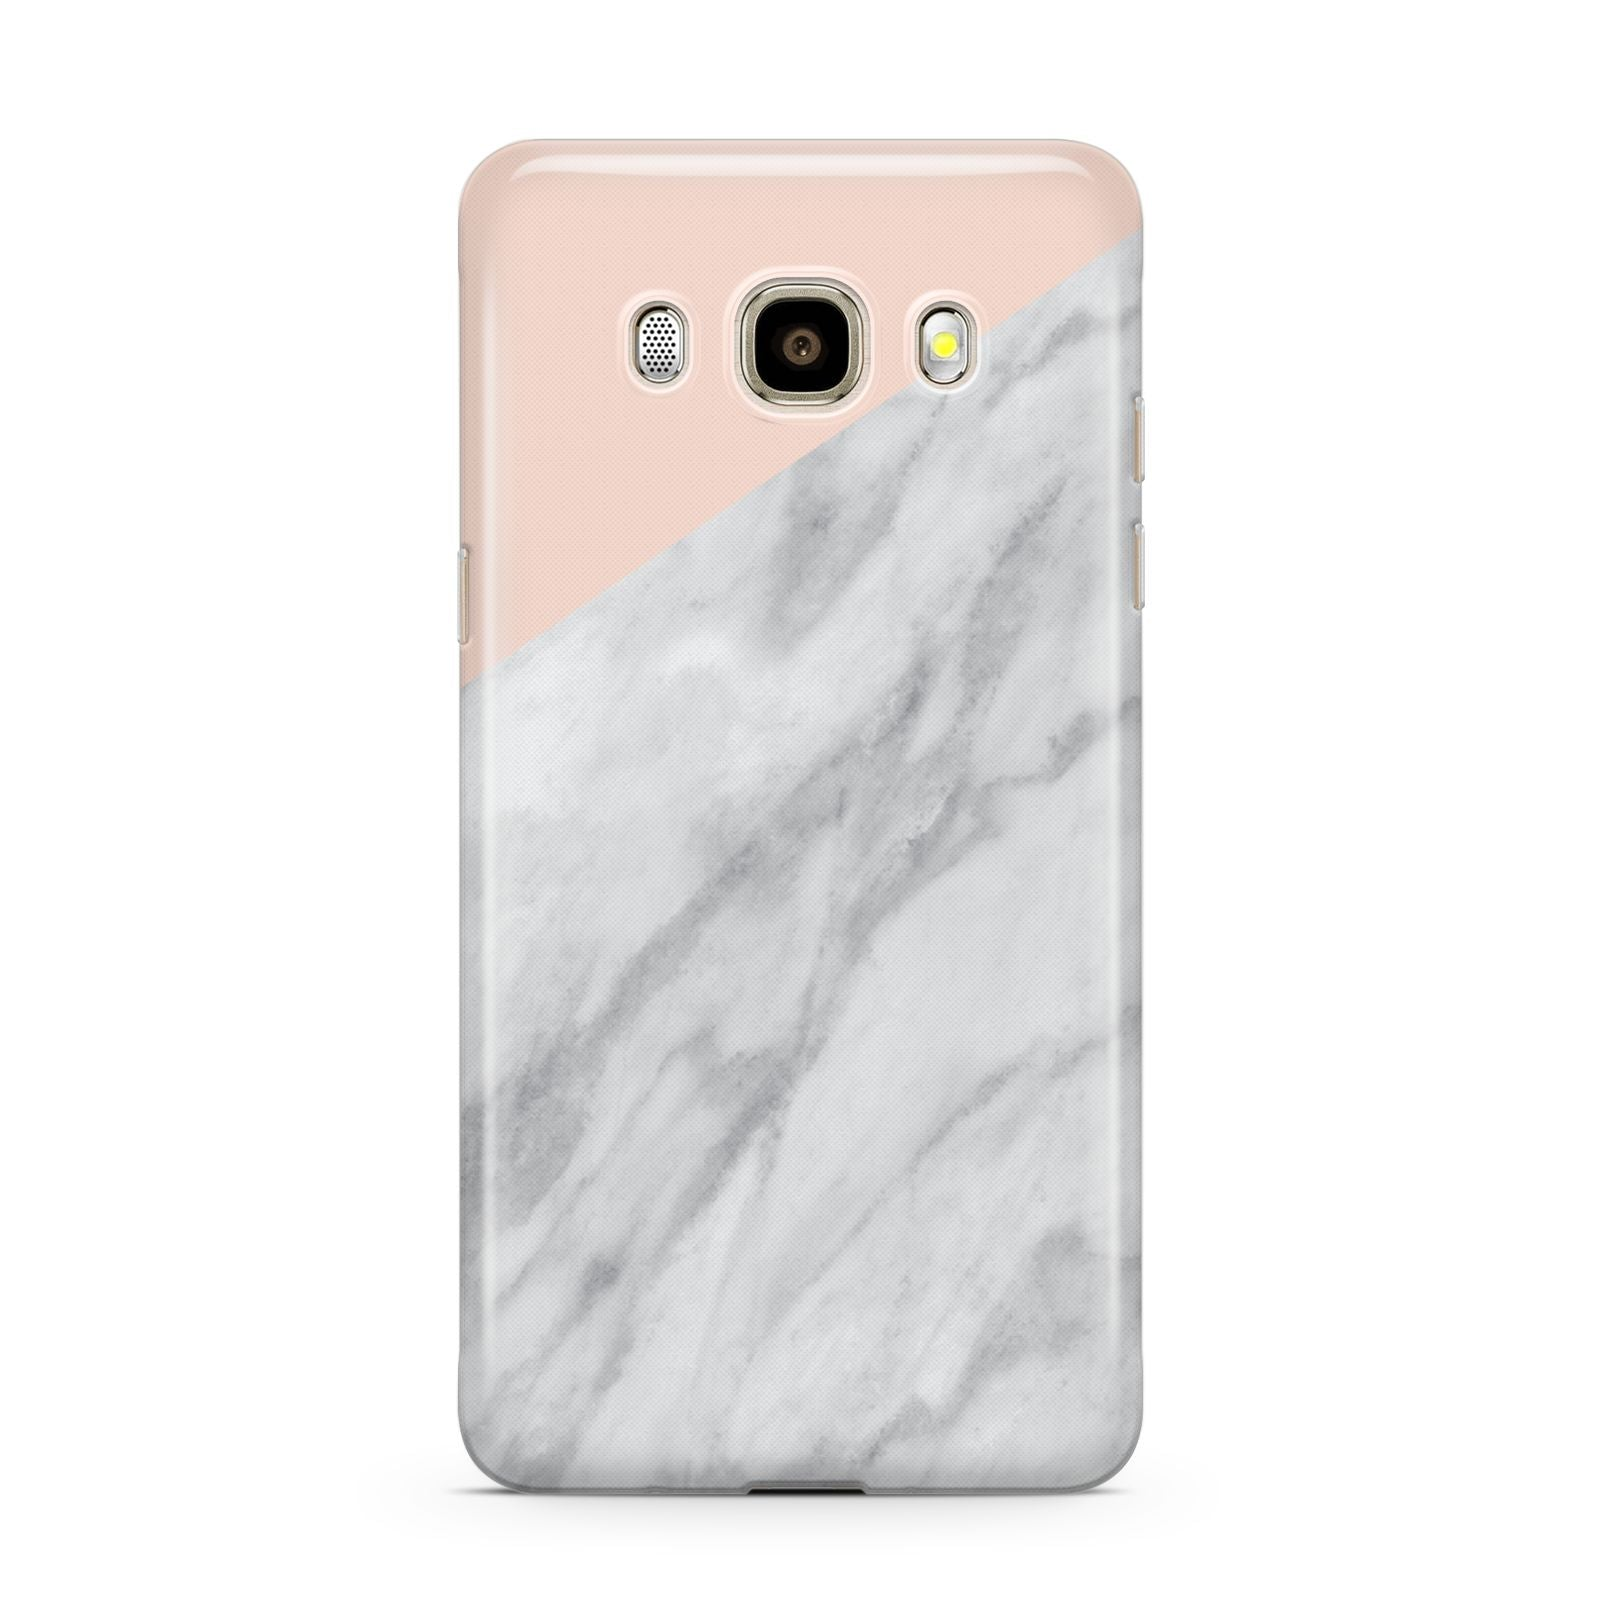 Marble Pink White Grey Samsung Galaxy J7 2016 Case on gold phone